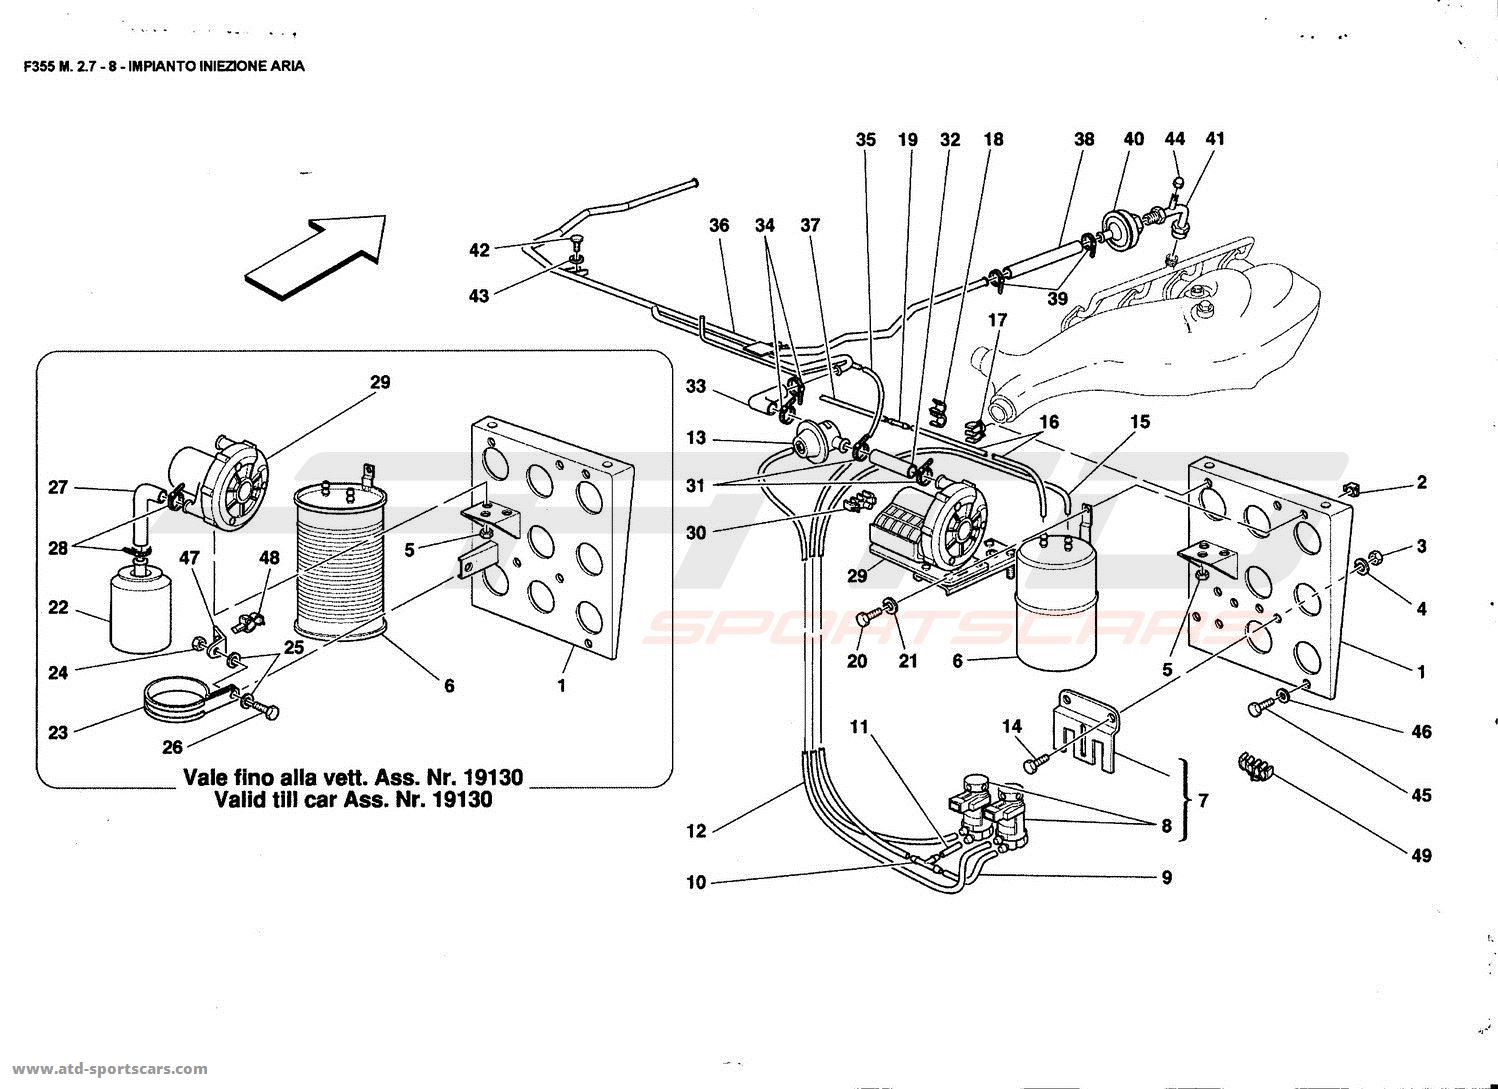 Ferrari F355 2-7 AIR INJECTION DEVICE parts at ATD